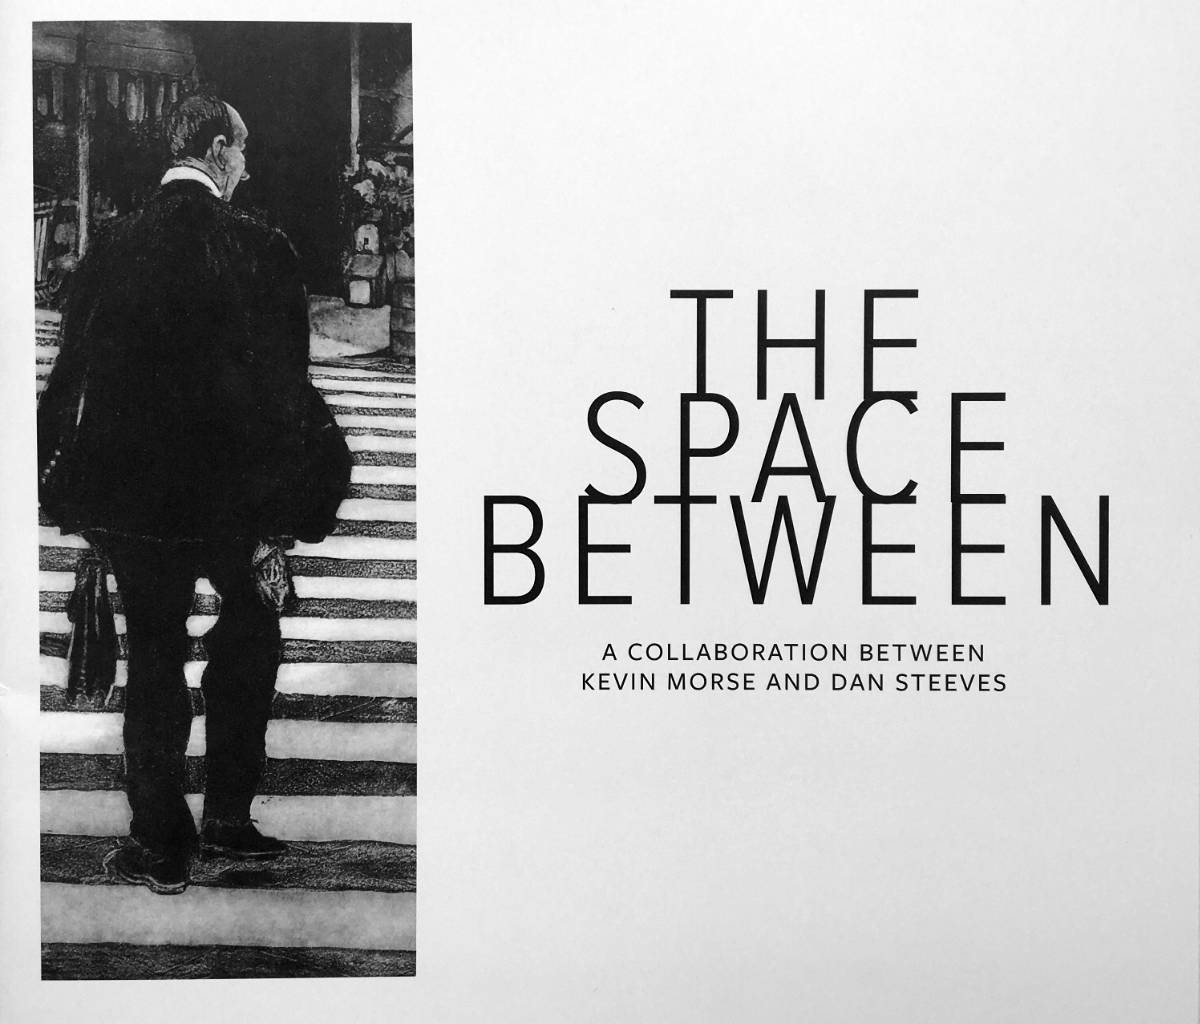 The Space Between — a collaboration between Kevin Morse and Dan Steeves (catalogue cover)